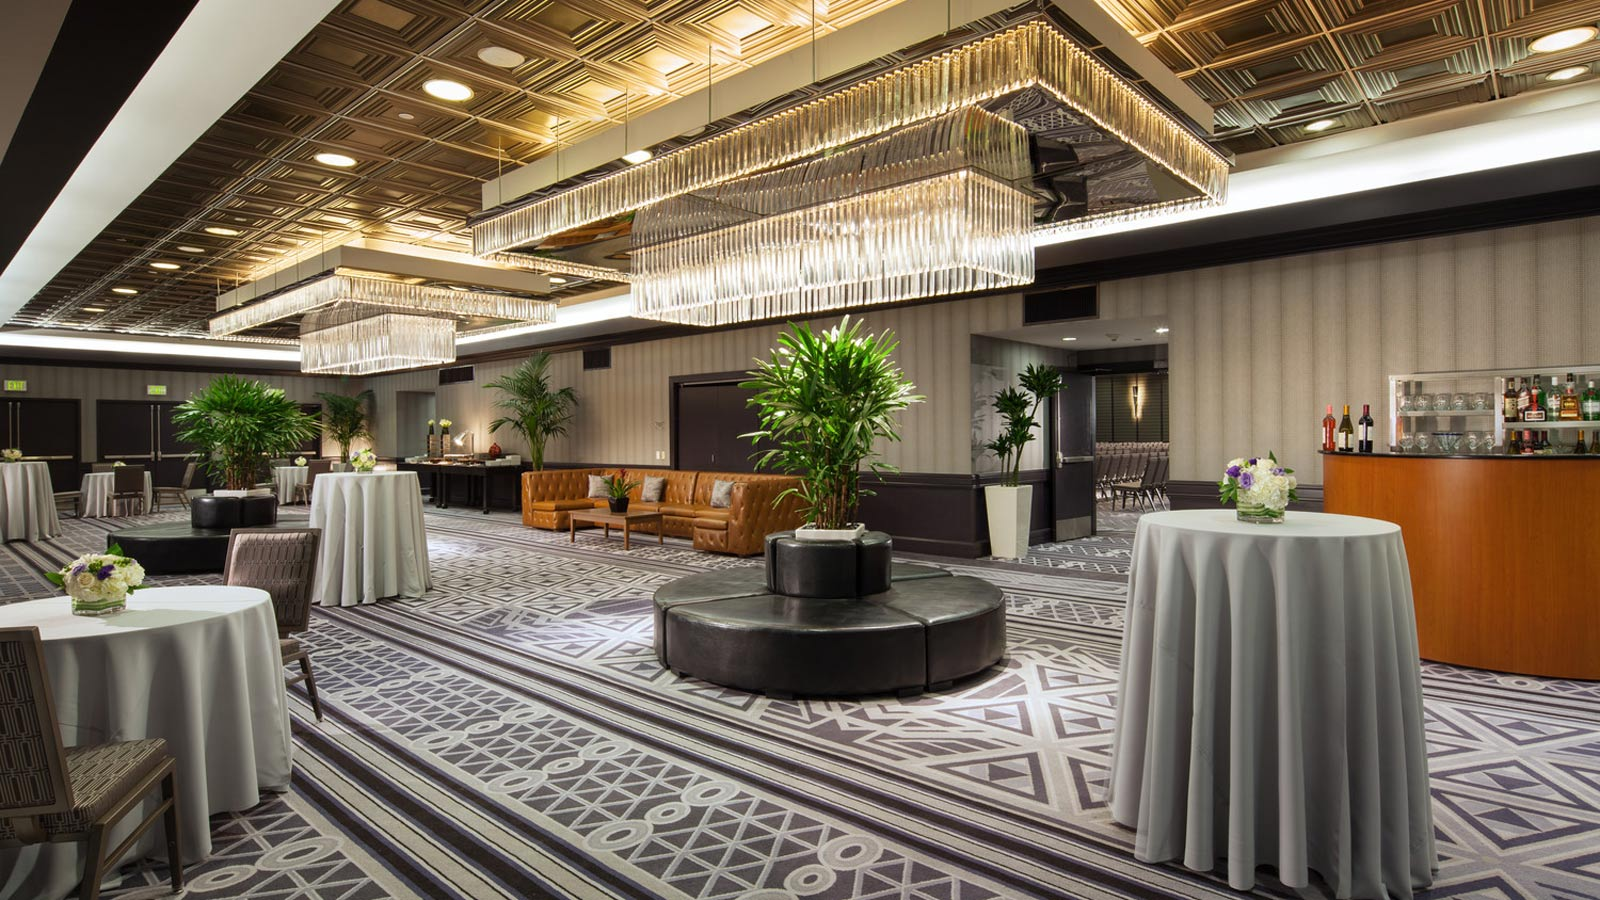 Los Angeles Meetings & Events - California Ballroom Pre-function Space